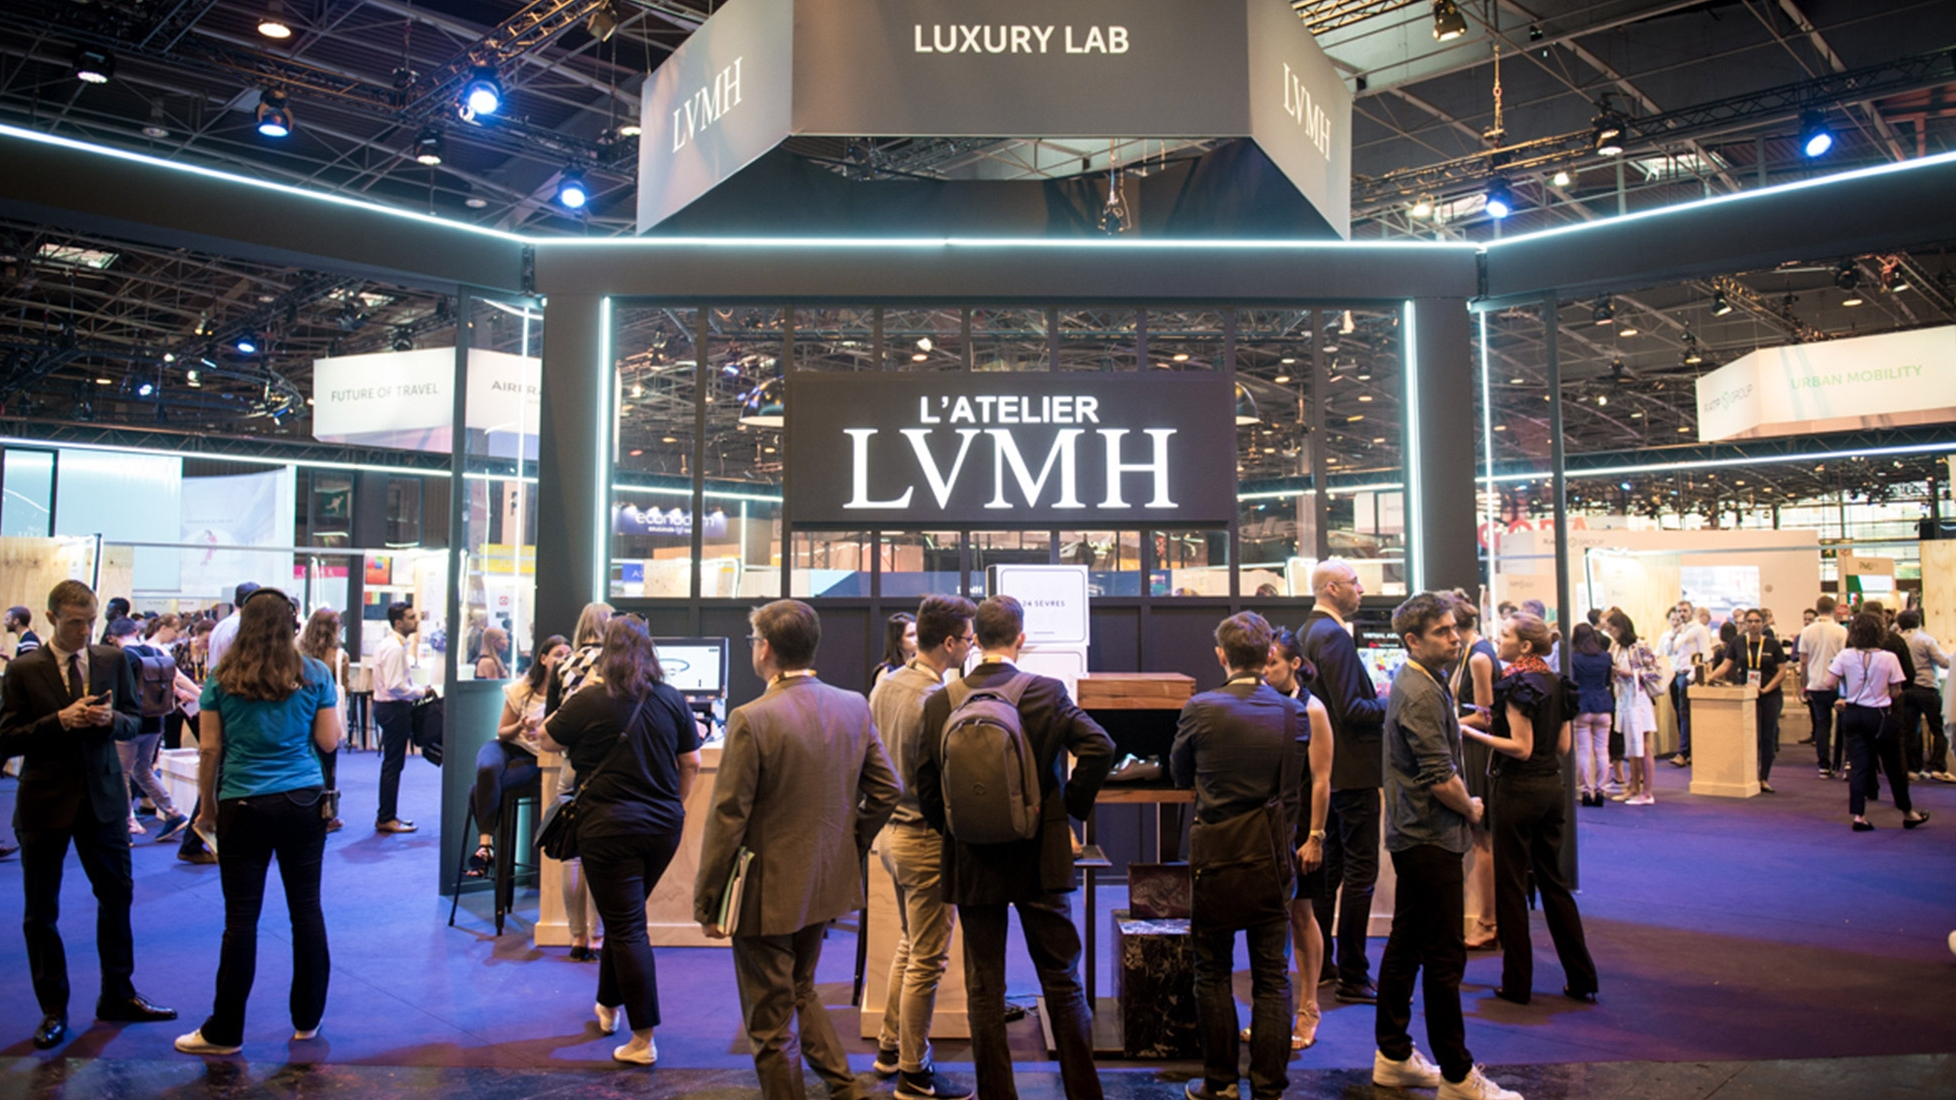 Our look back at attending the Viva Technology conference in Paris as a part of the LVMH Luxury Lab // Image: LVMH